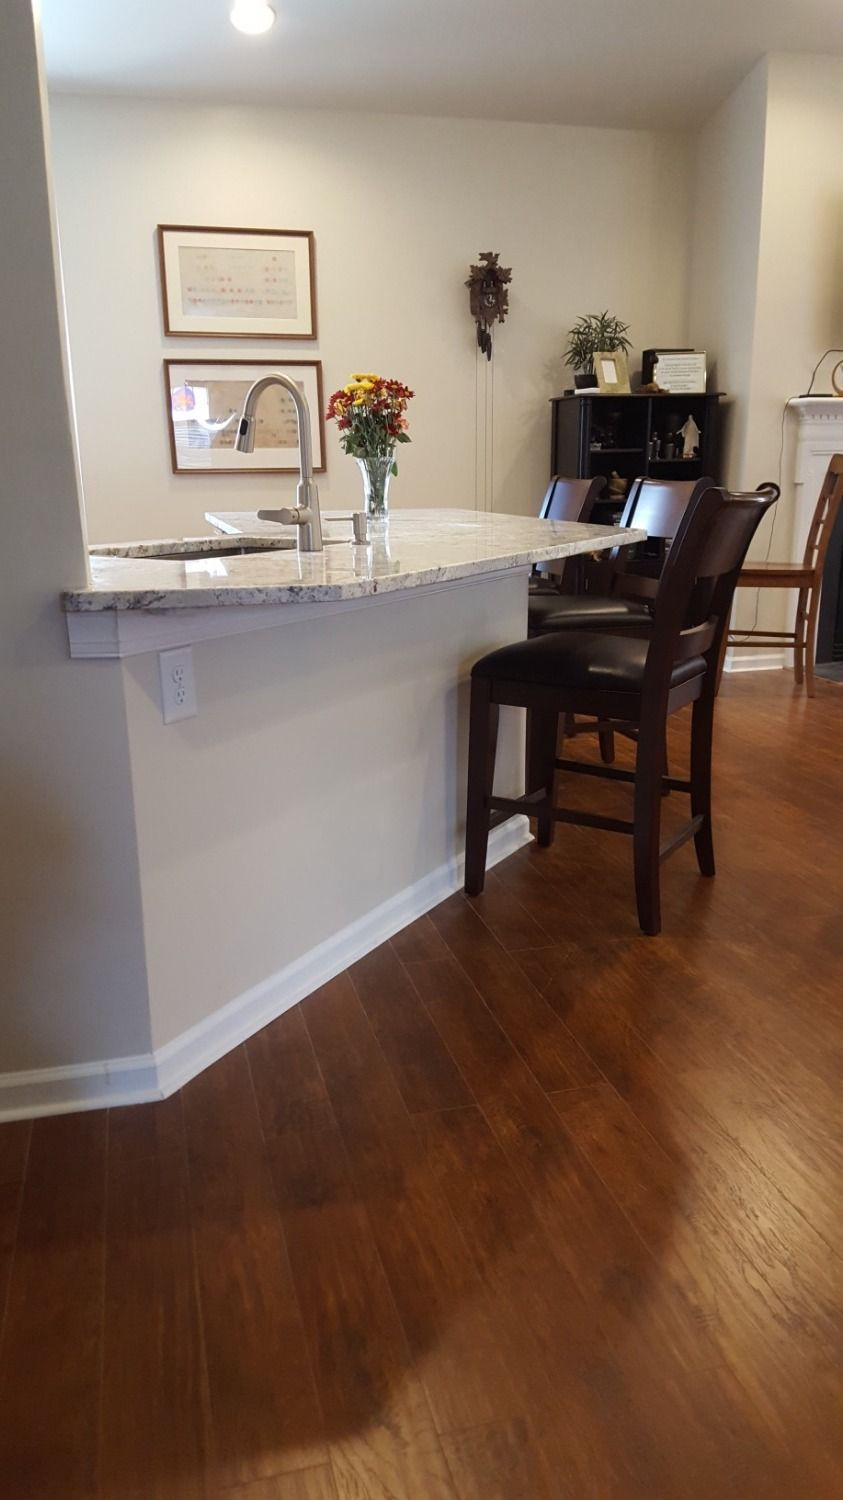 Countertop Braces Floating Your Kitchen Bar Top With Hidden Countertop Support